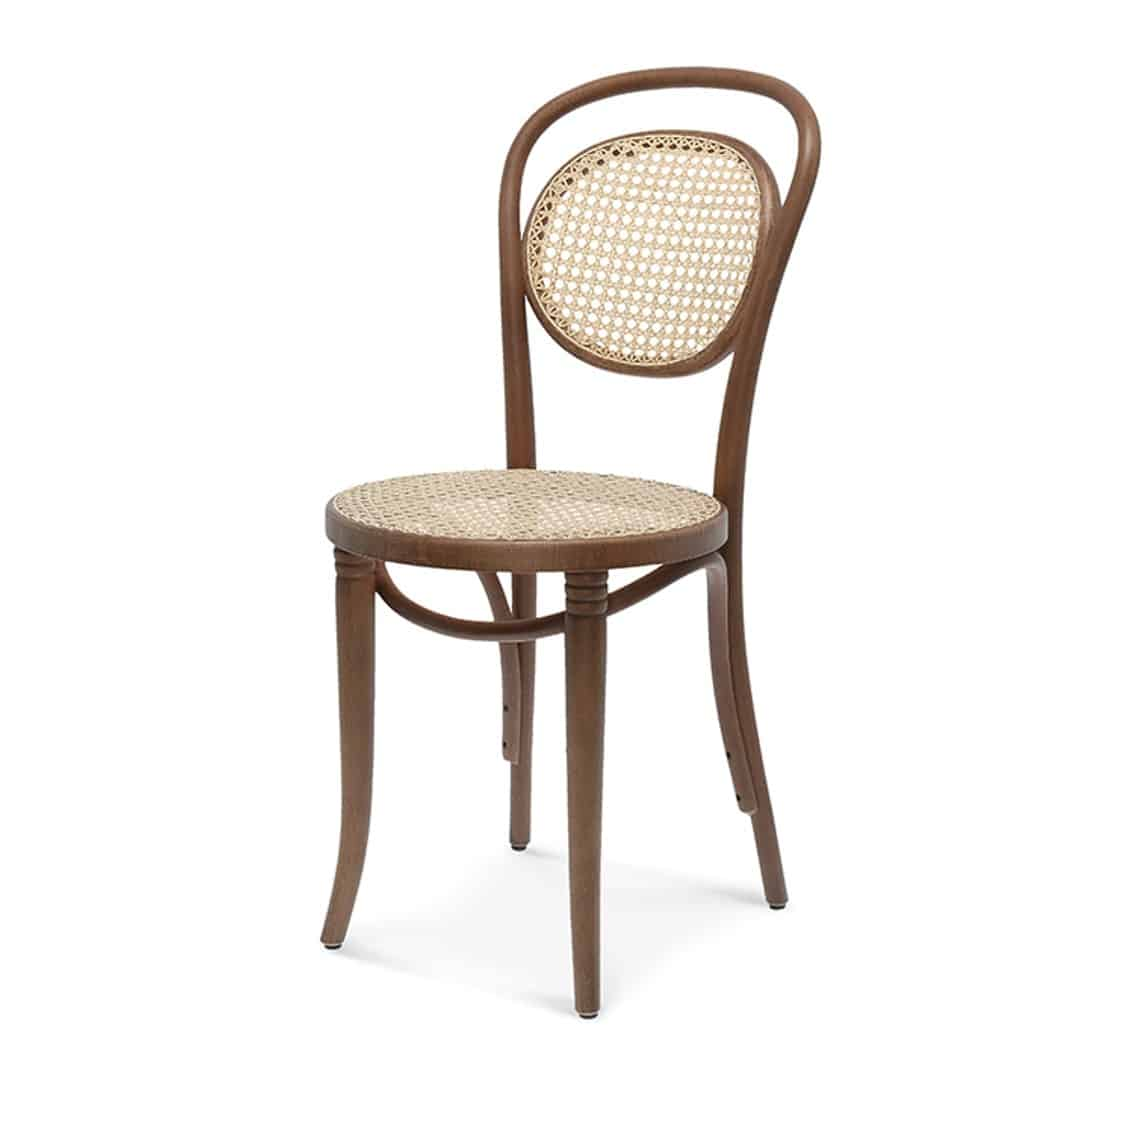 Fleur Side Chair Bentwood Chair With Kane Seat And Back DeFrae Contract Furniture